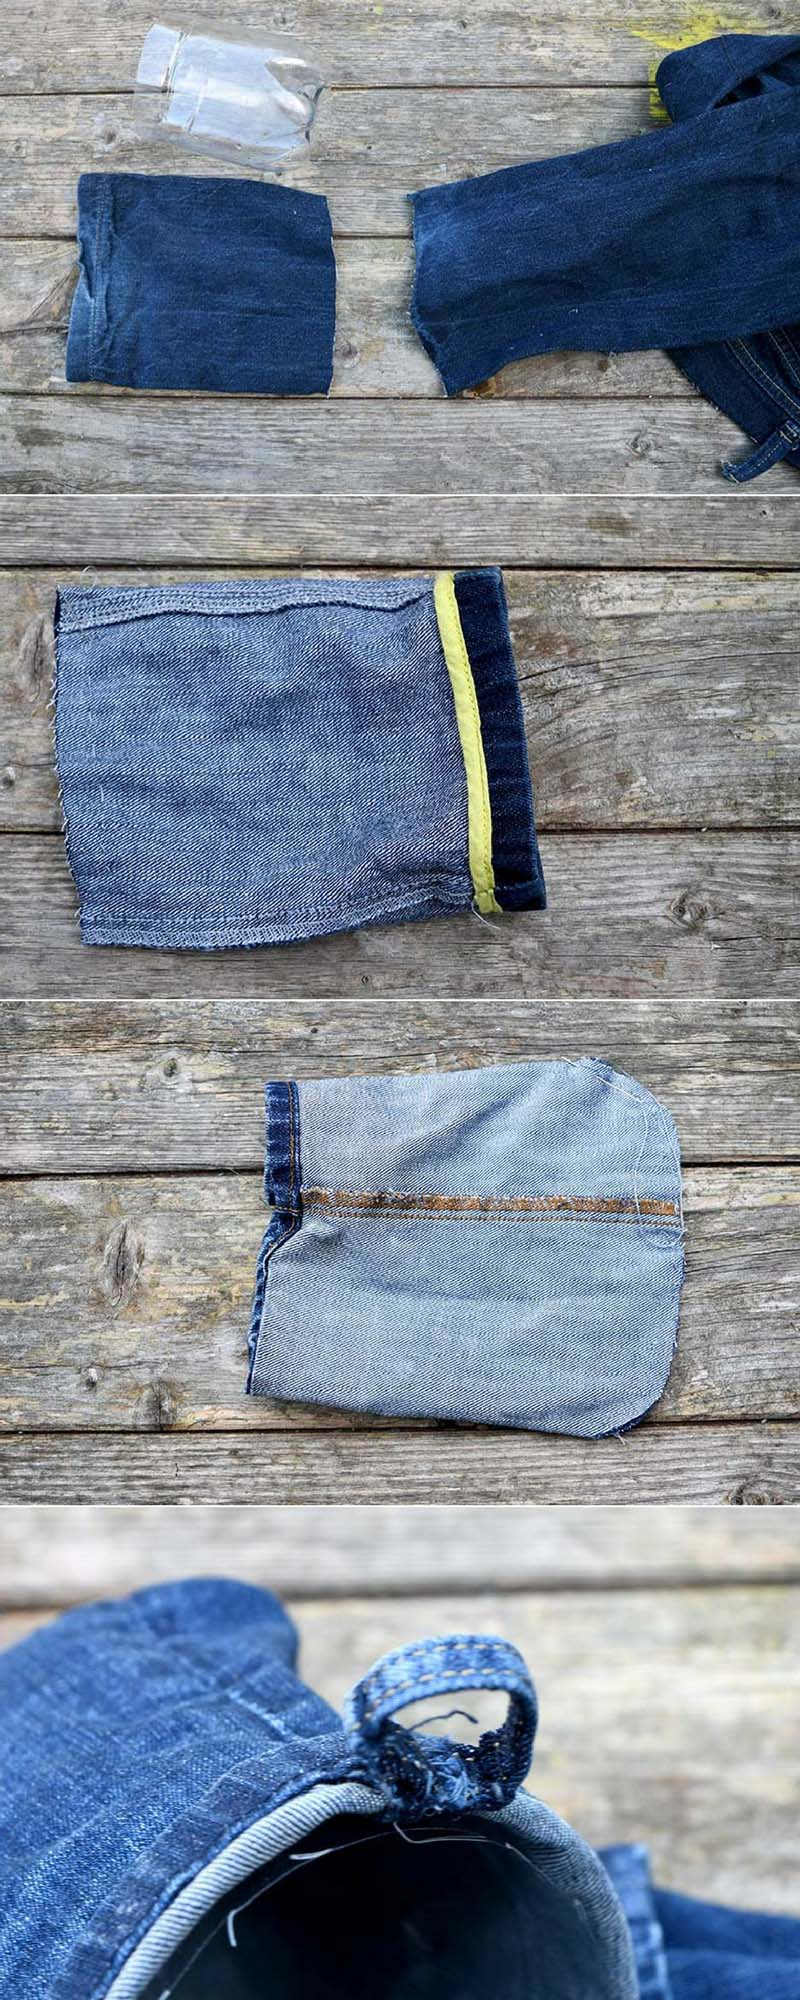 Making denim pouches for indoor herb garden